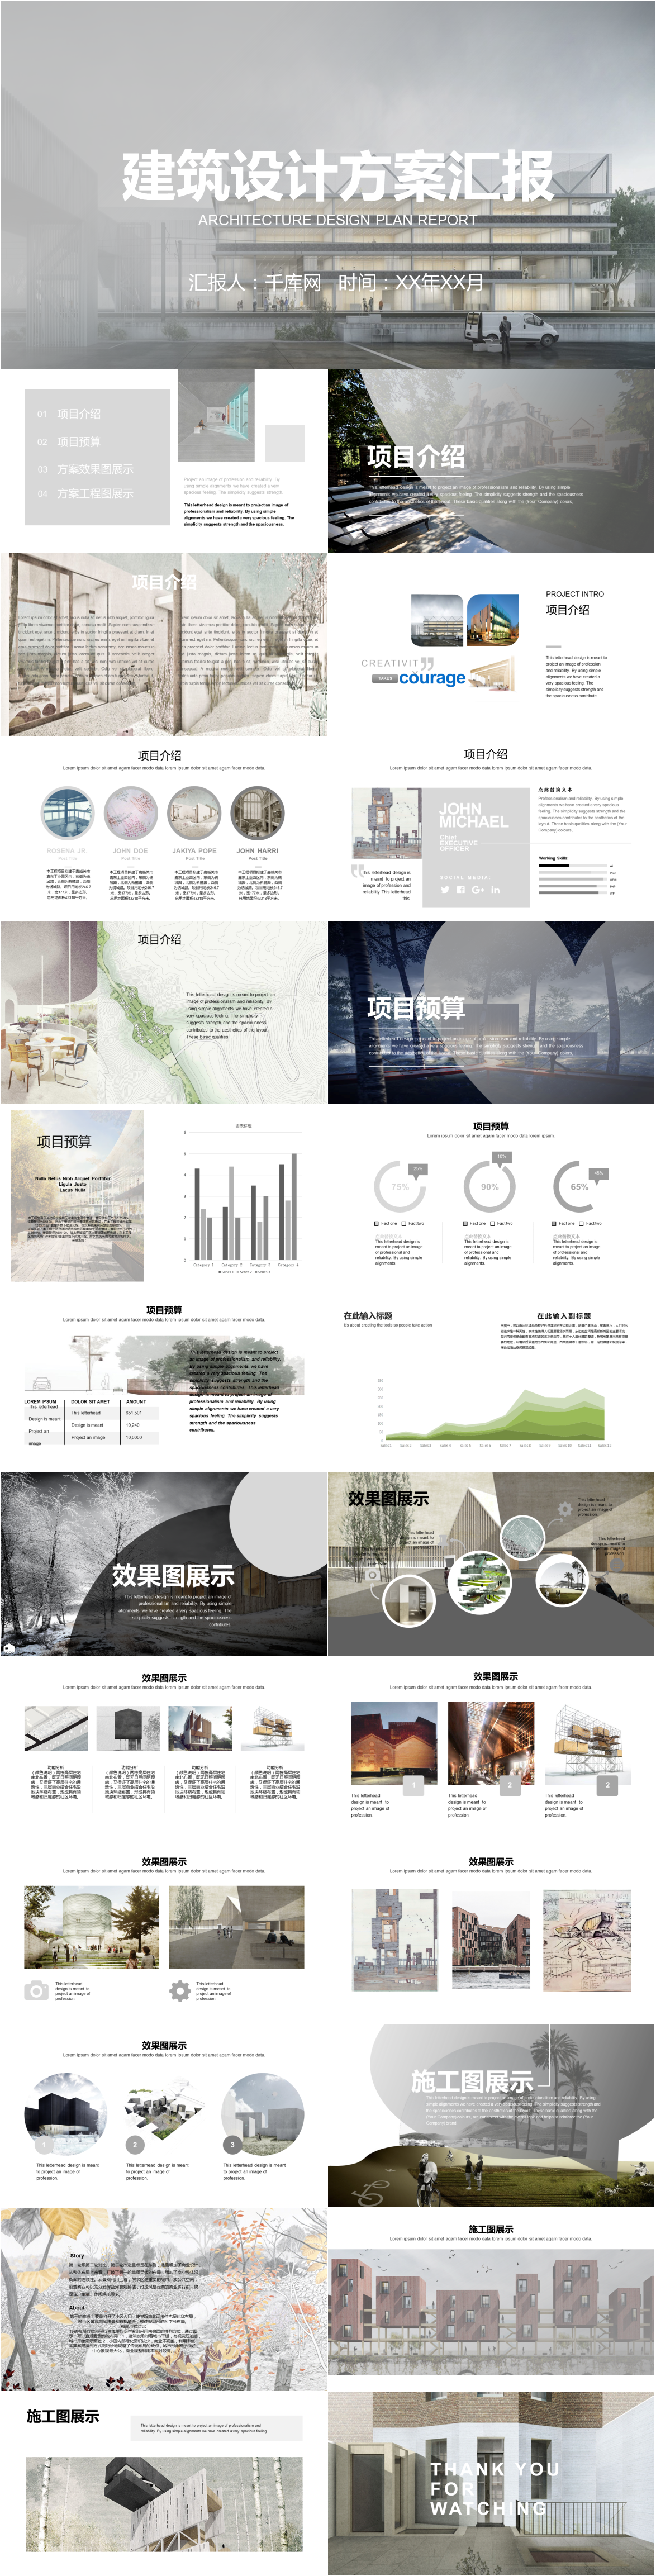 Awesome ppt template for architectural design project project of ppt template for architectural design project project of european and american construction industry toneelgroepblik Image collections